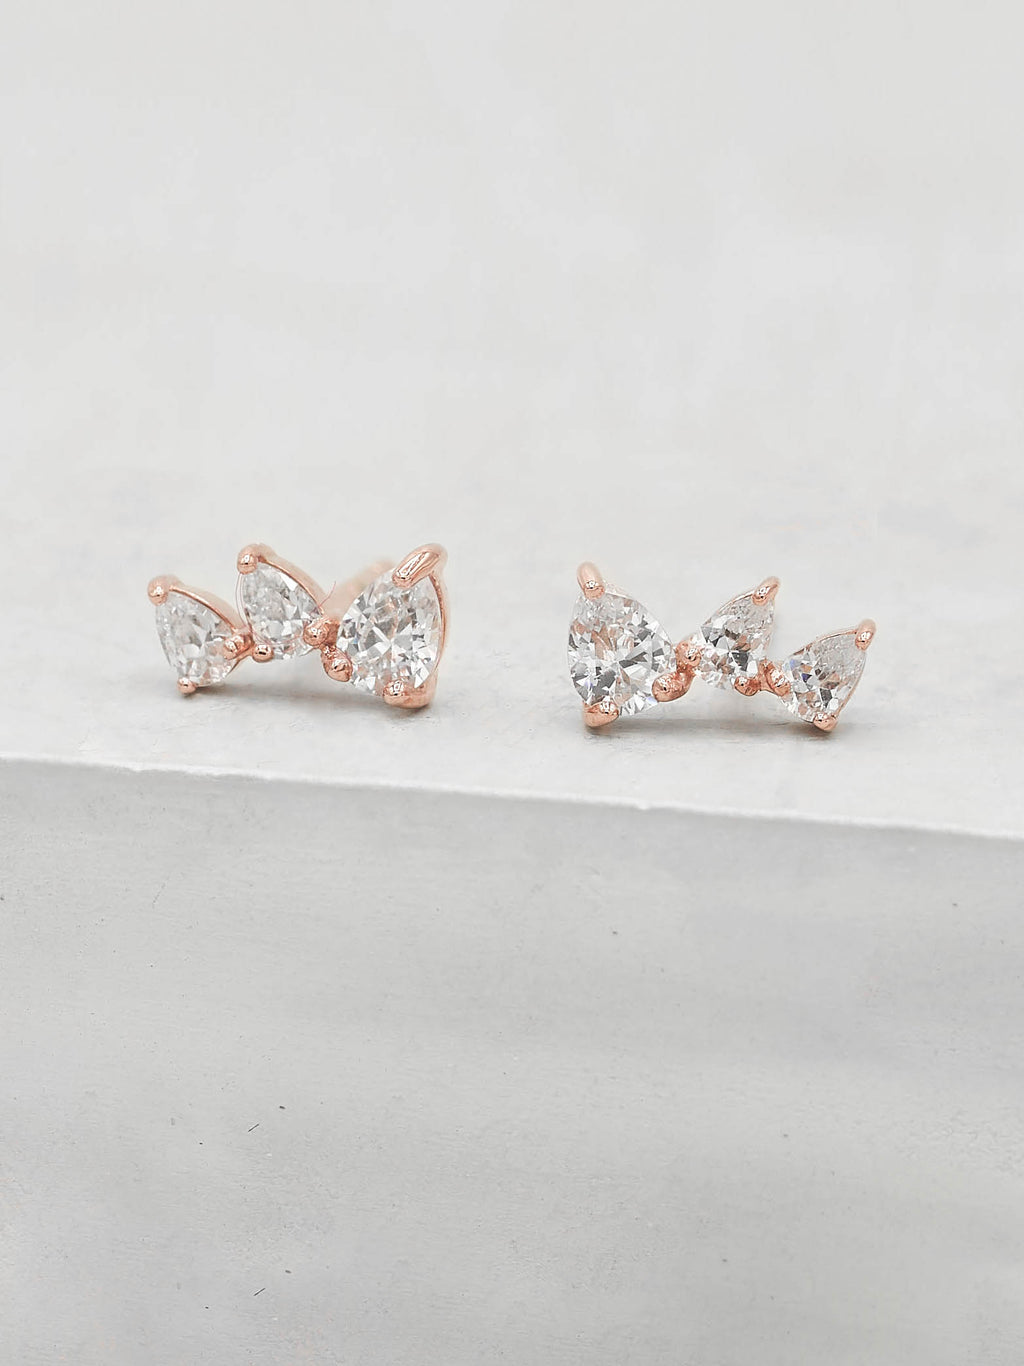 Rose Gold Plated  3 Stones White  Pear Shape Cubic Zirconia CZ Stud Earrings by The Faint Hearted jewelry